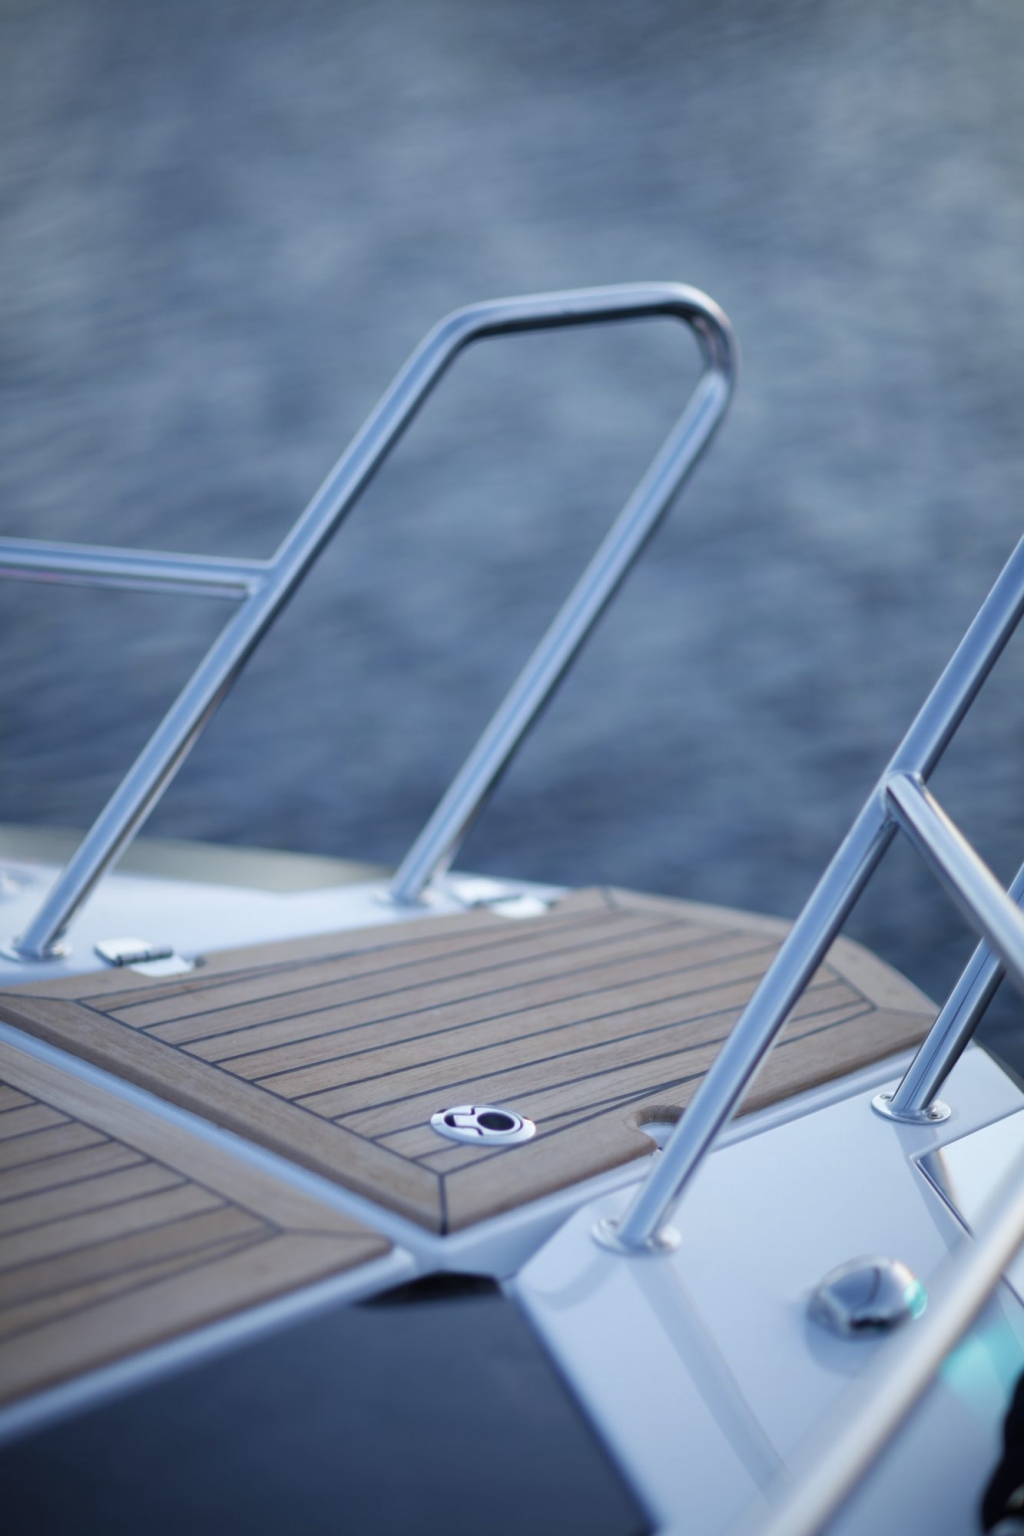 Finnmaster T7 with Yamaha Outboard - Anchor locker and stainless steel handrails